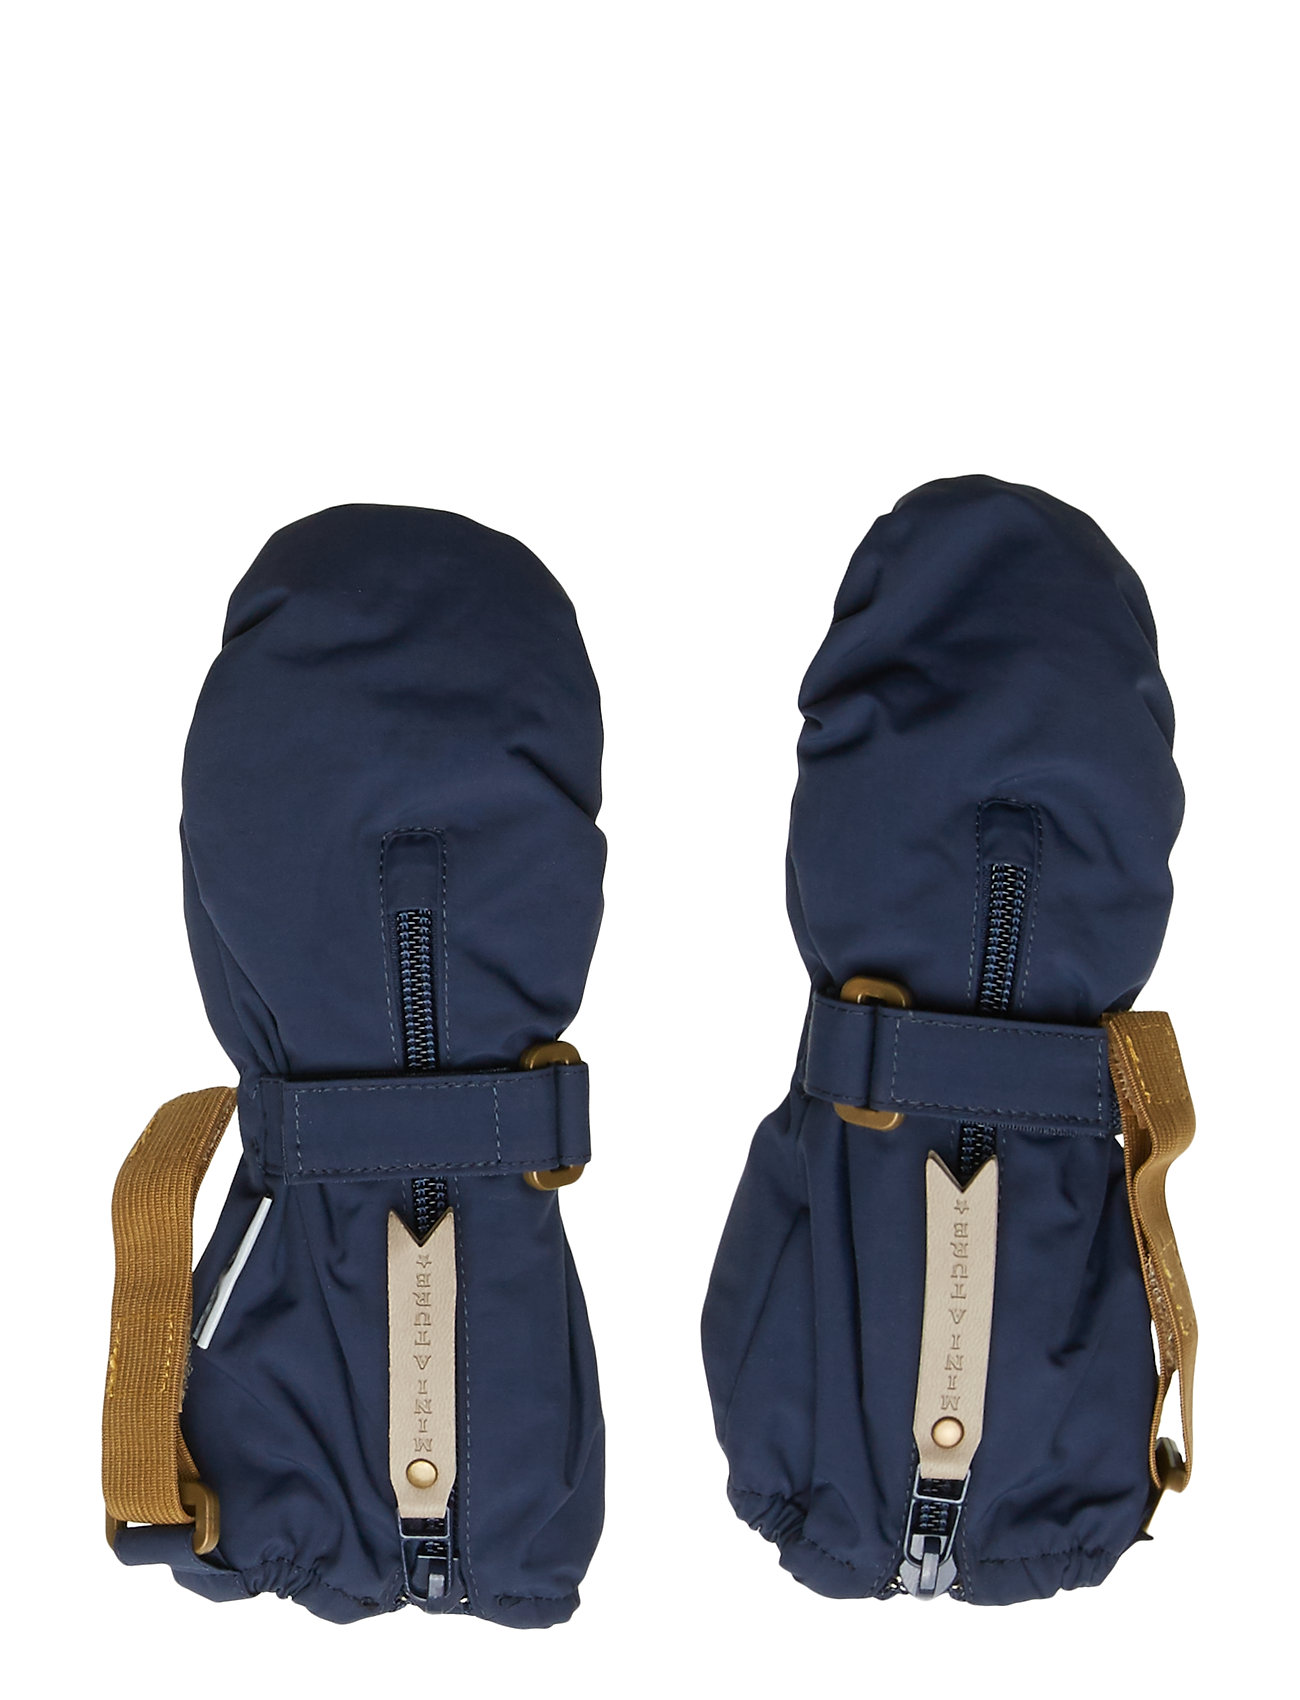 Mini A Ture Cesar Glove, M - PEACOAT BLUE